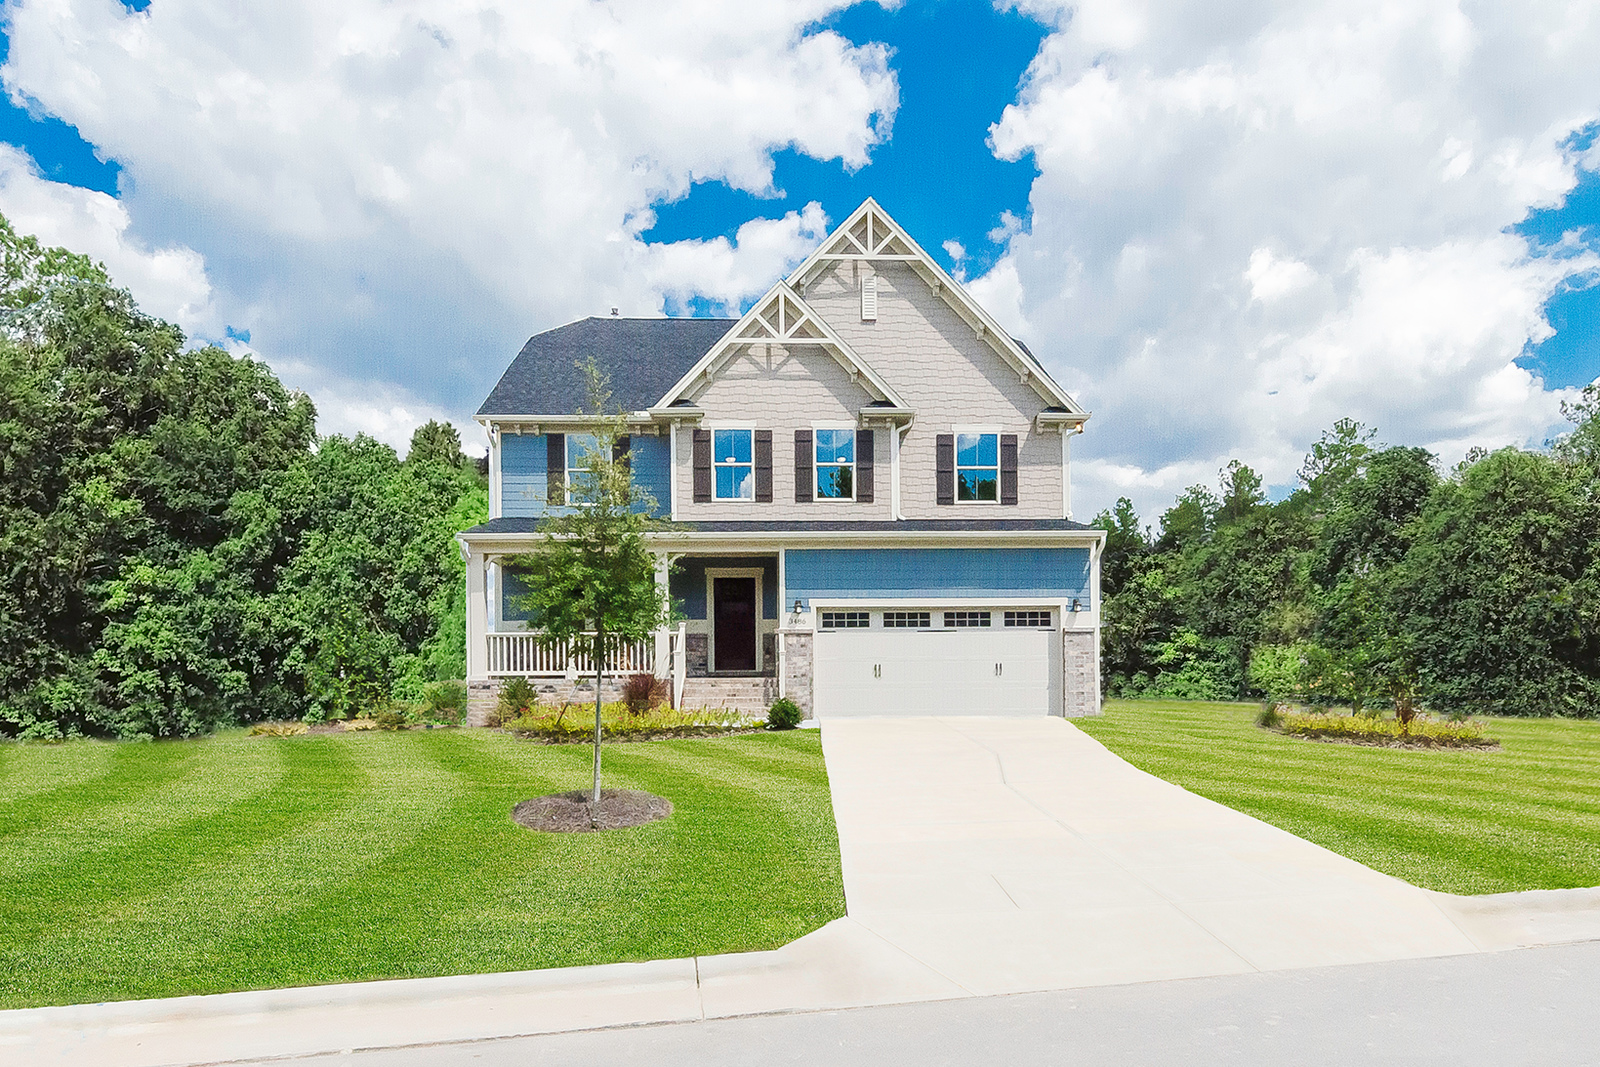 New Homes For Sale At Holcomb Woods In Harrisburg Nc Within The